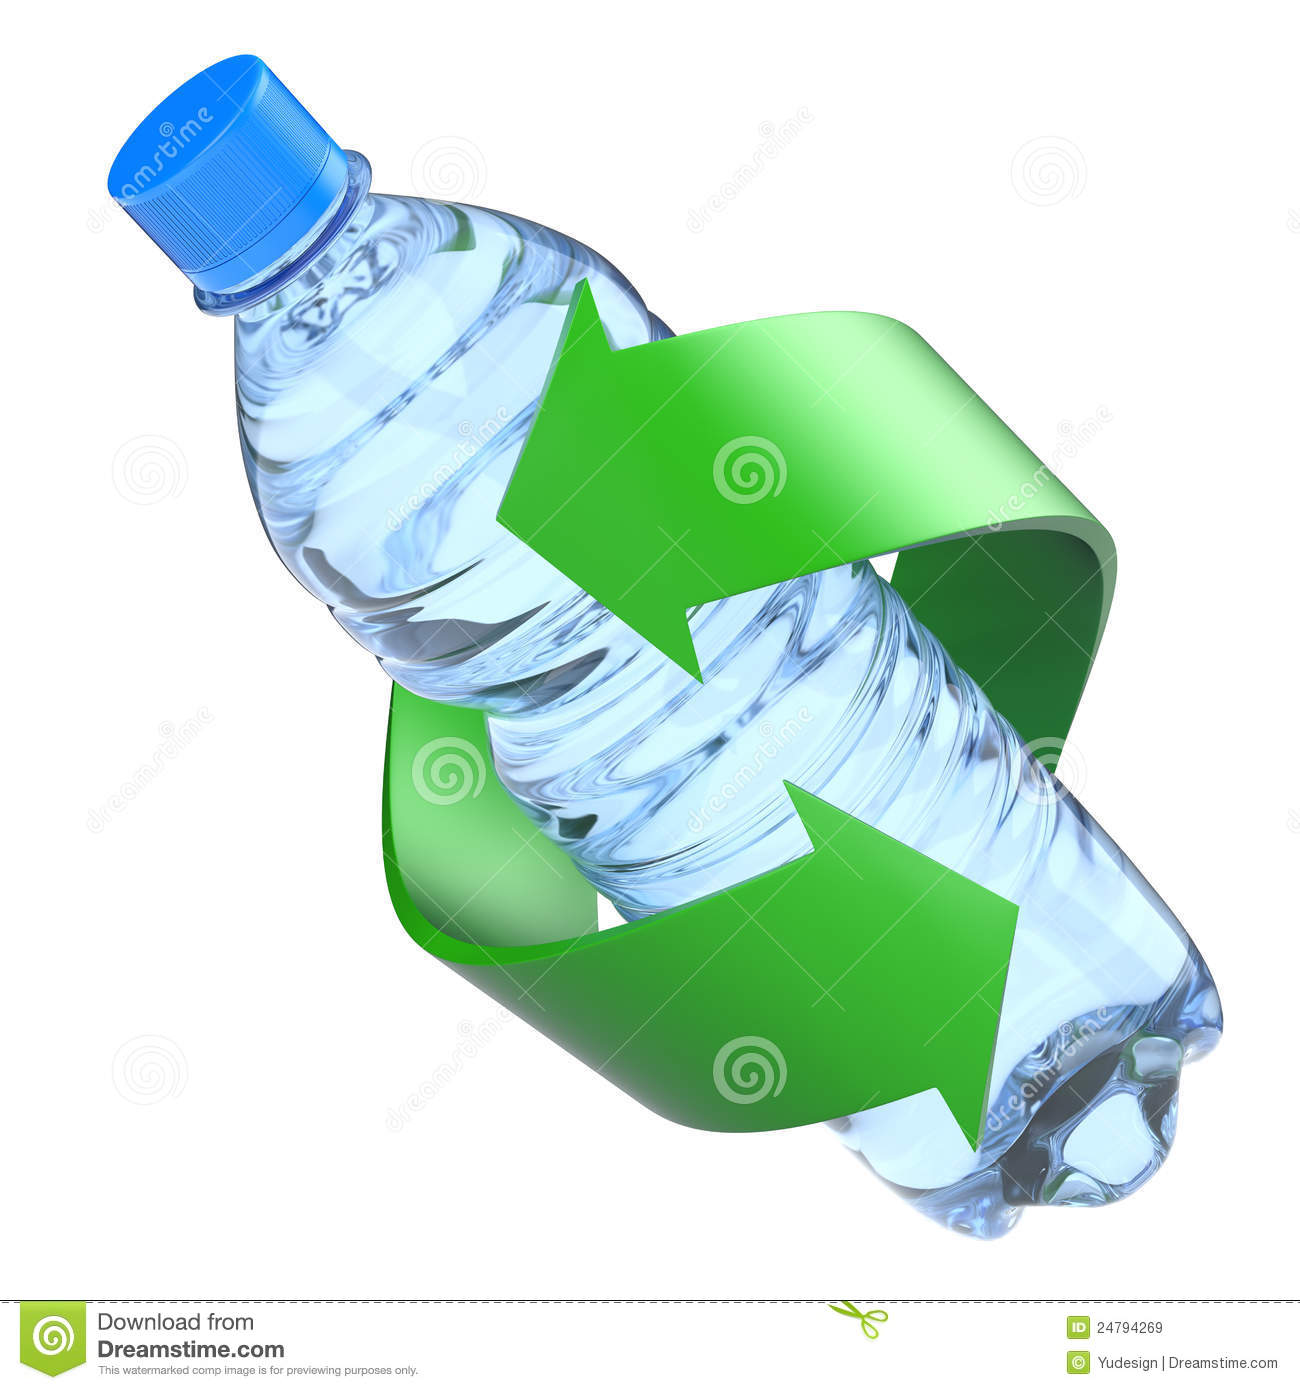 Plastic Bottle Recycling Recycle Plastic Bottle Recycling Royalty Free Stock Photography